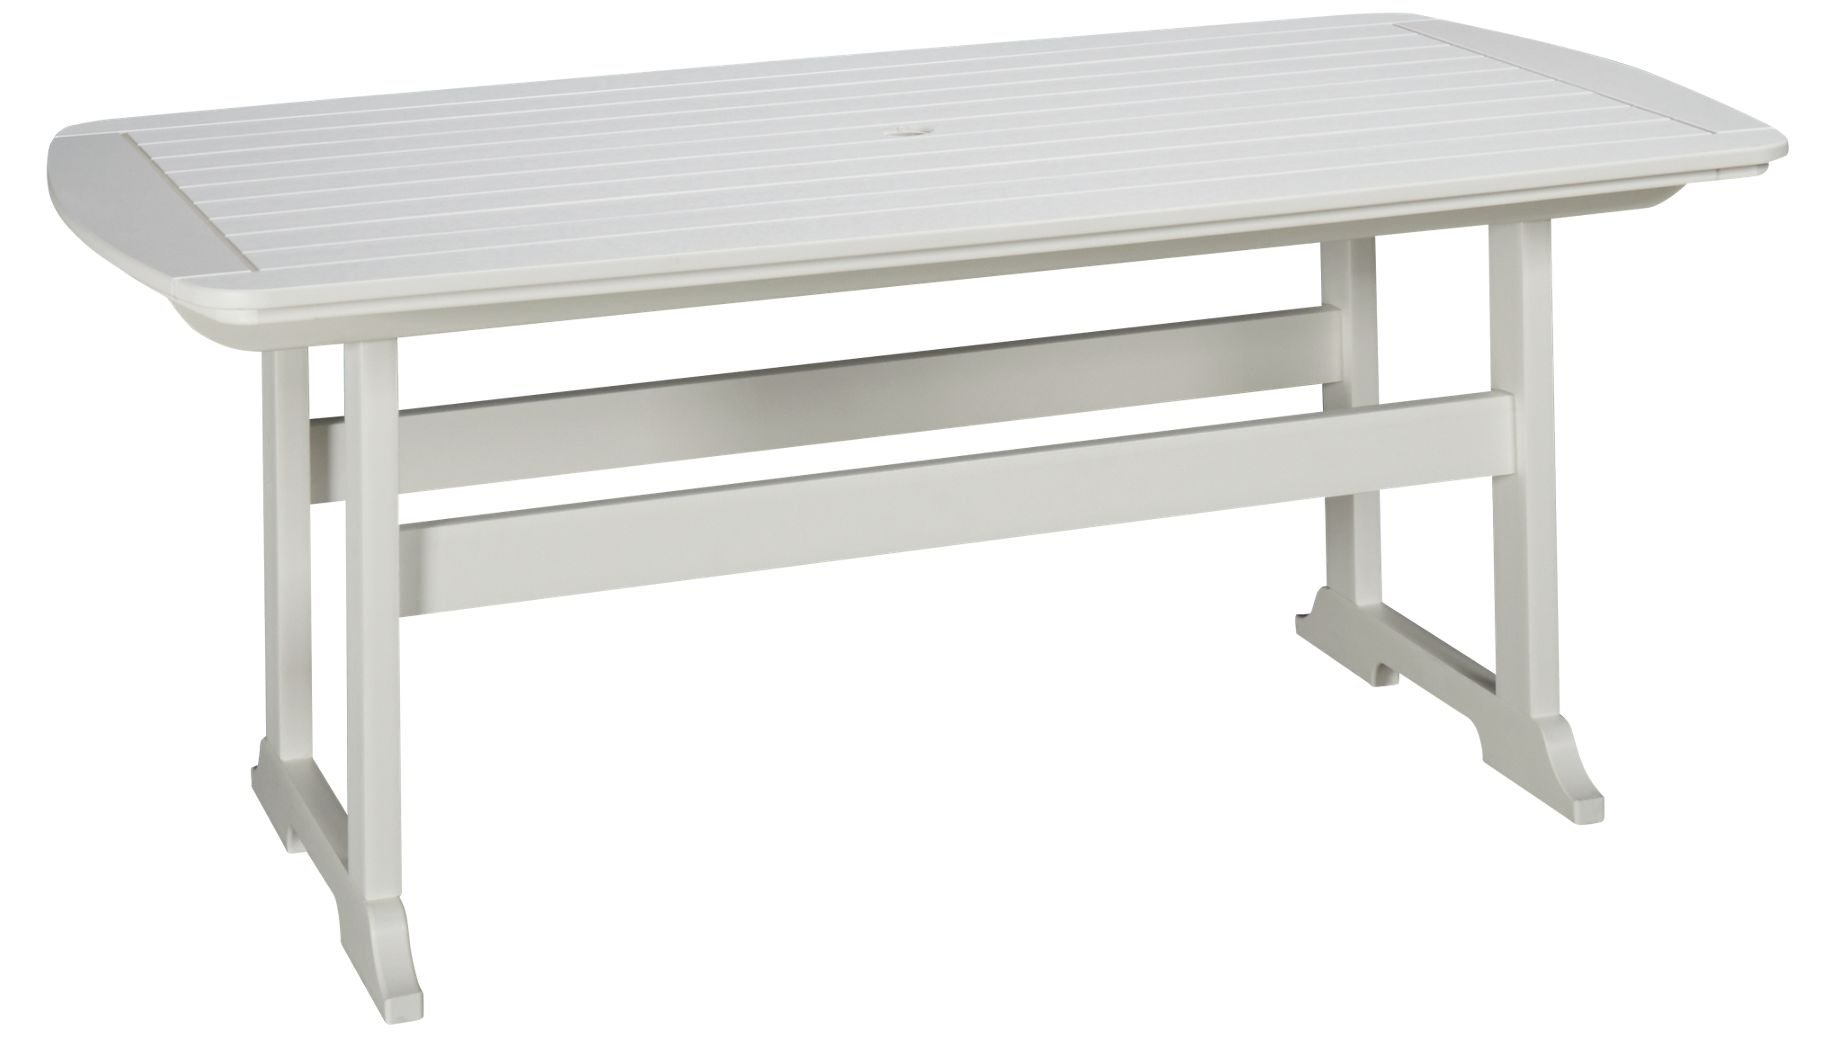 Seaside Casual Furniture Portsmouth 72 Dining Table